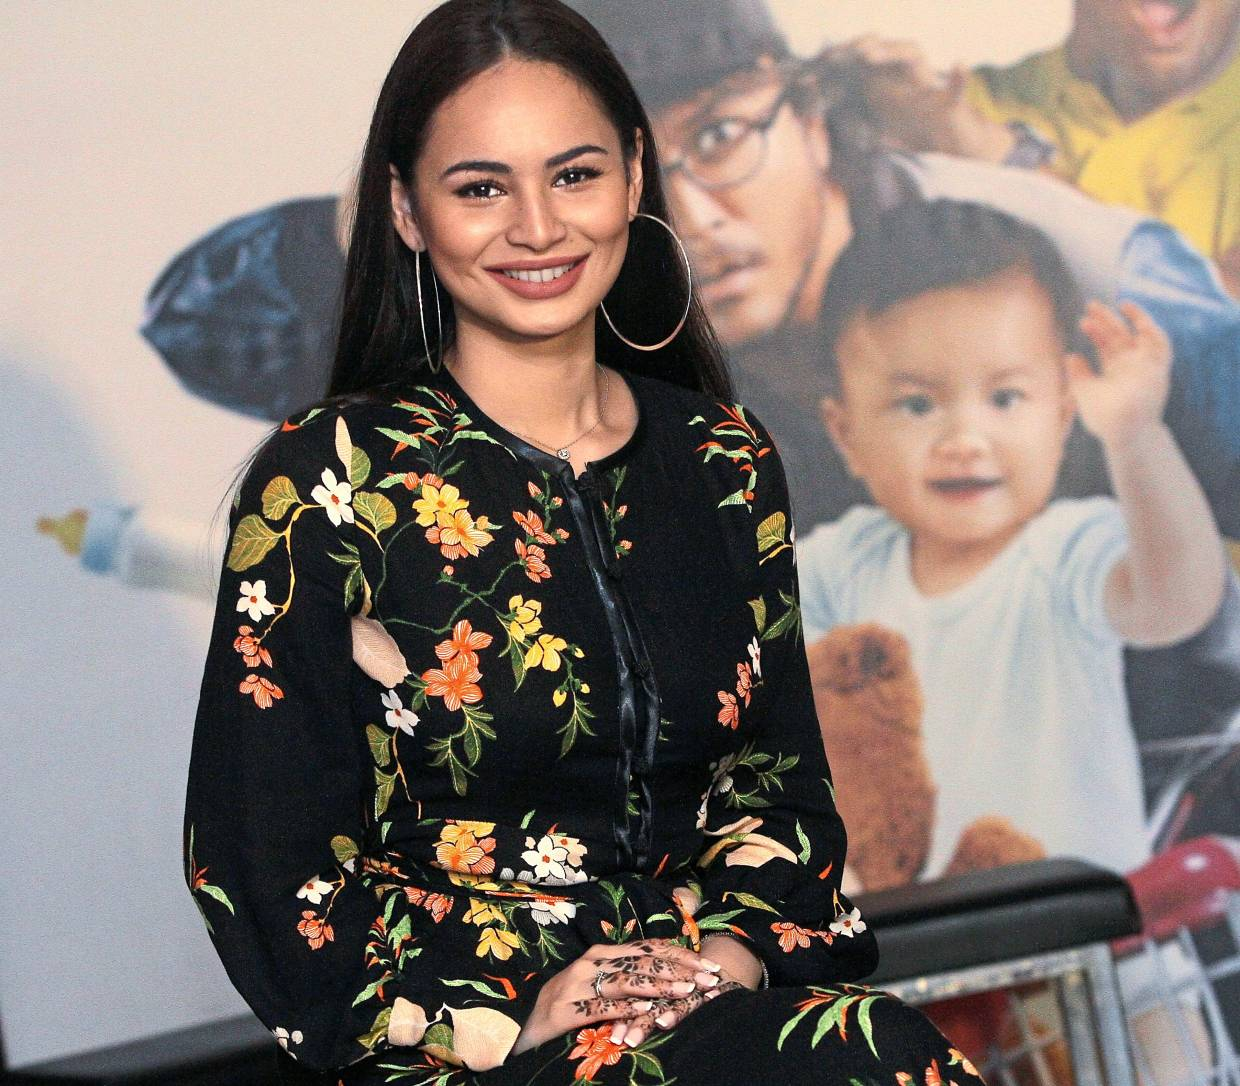 ombak rindu star due to give birth in the star online